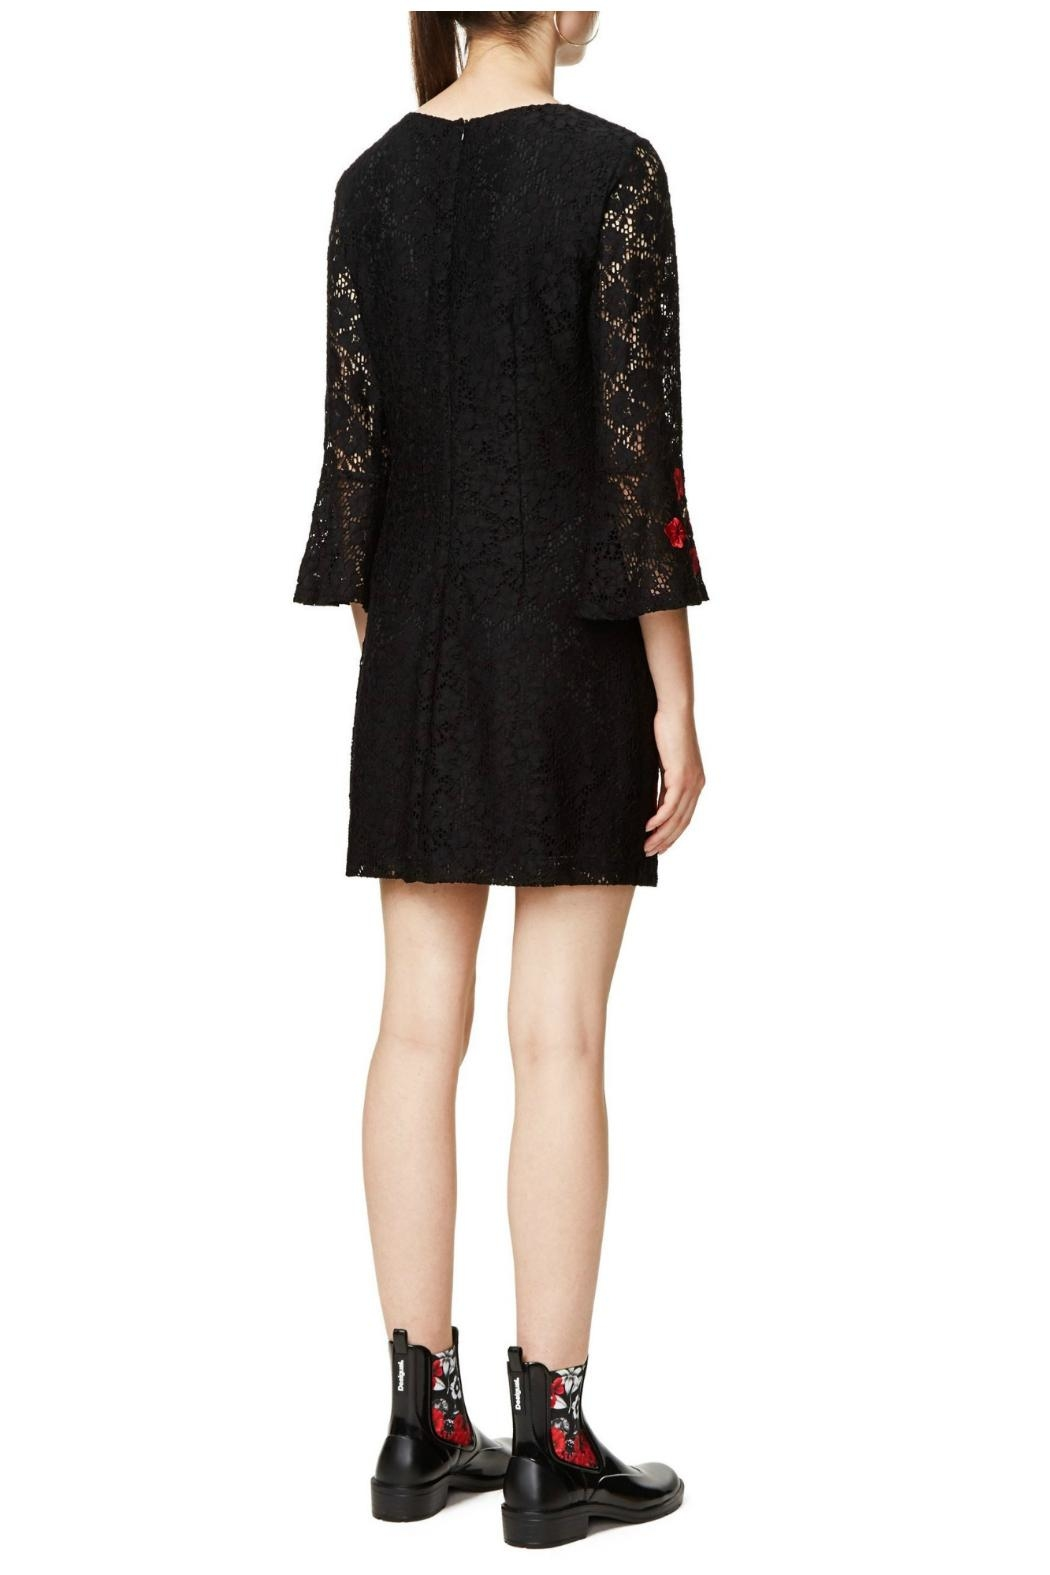 Desigual - Spain Black Lacy Dress - Side Cropped Image